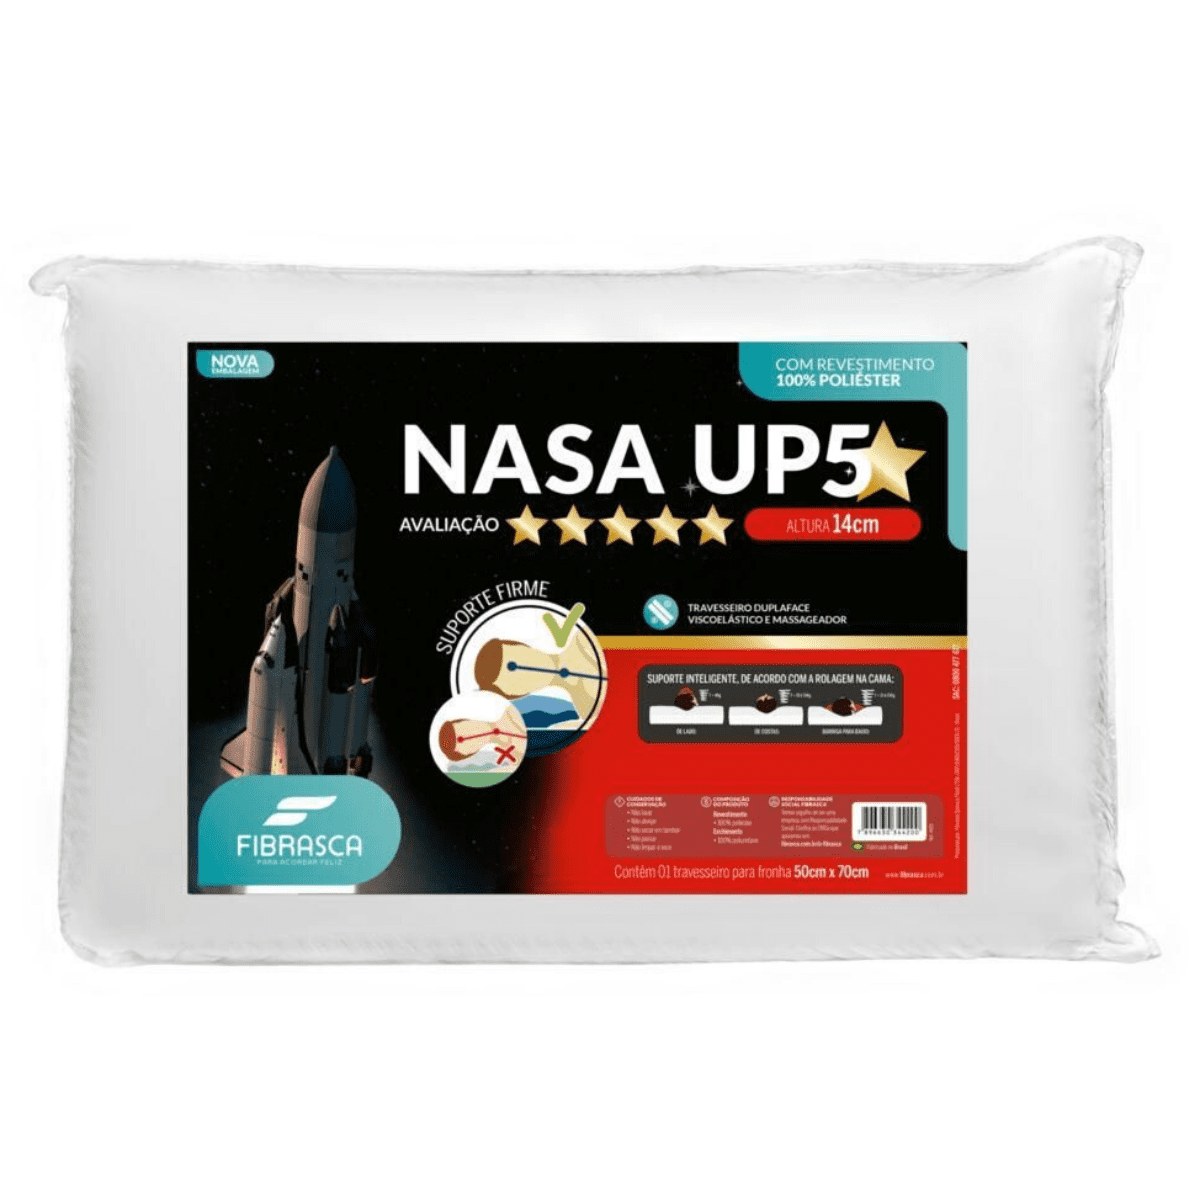 Travesseiro nasa up5 50x70